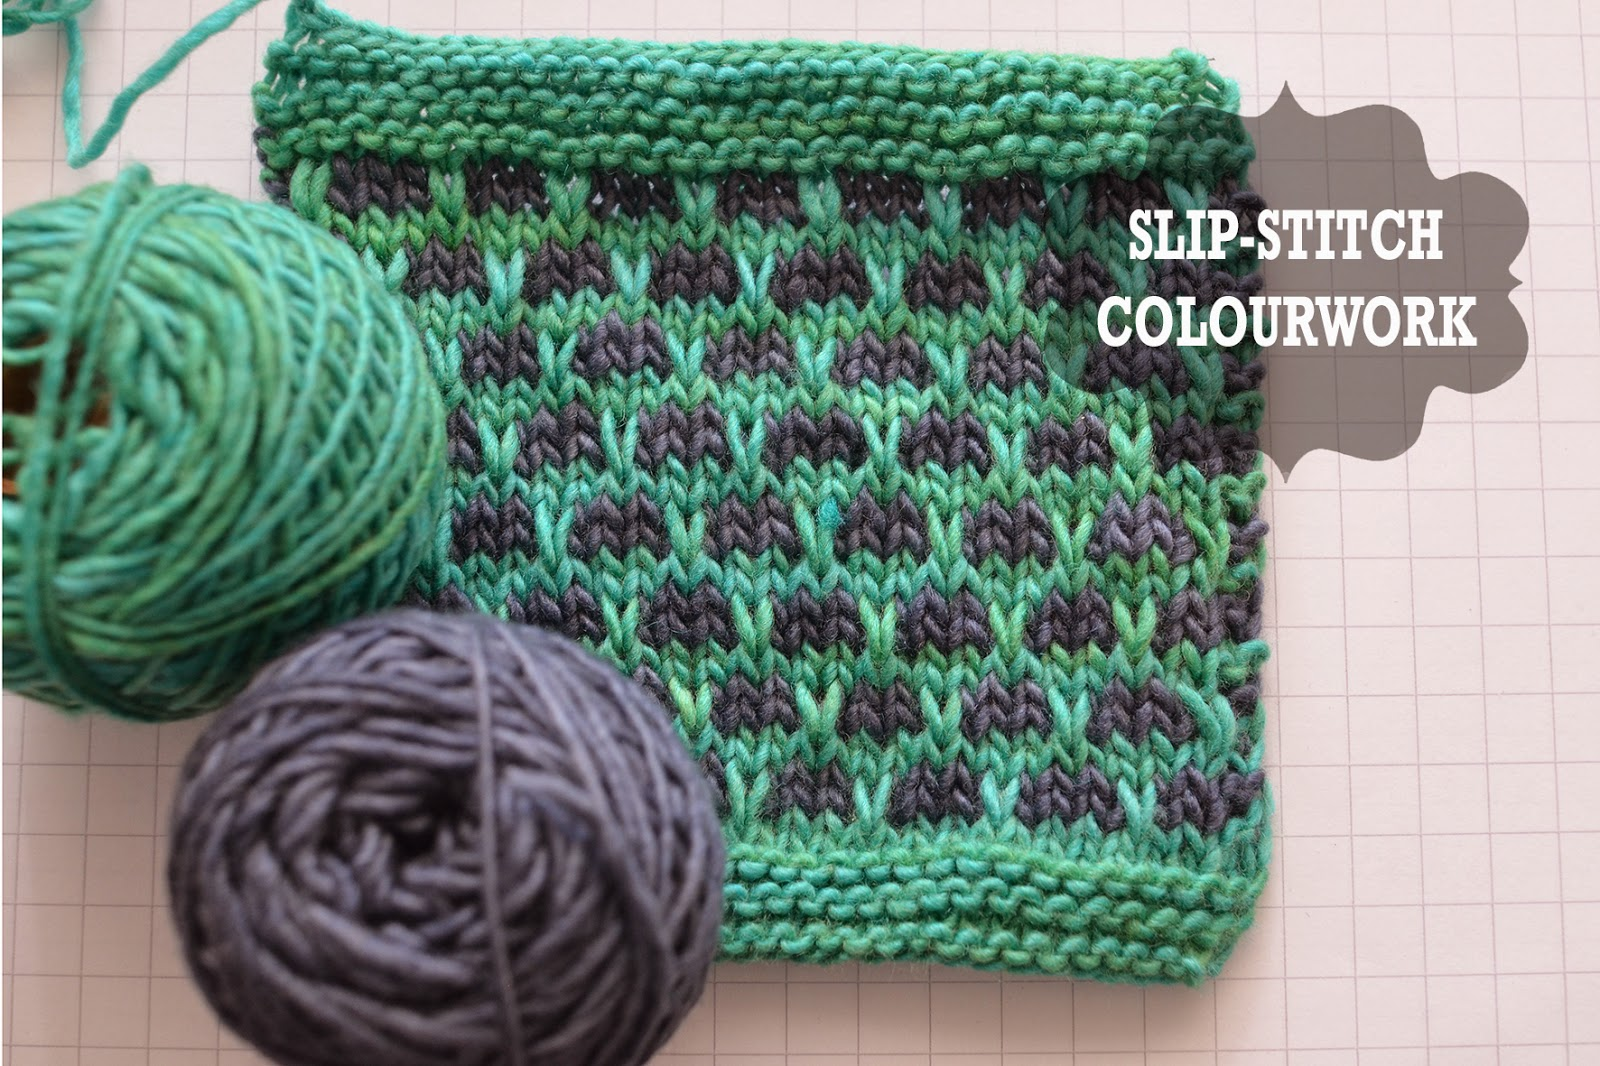 a clear slip stitch colourwork tutorial for mosaic knitting